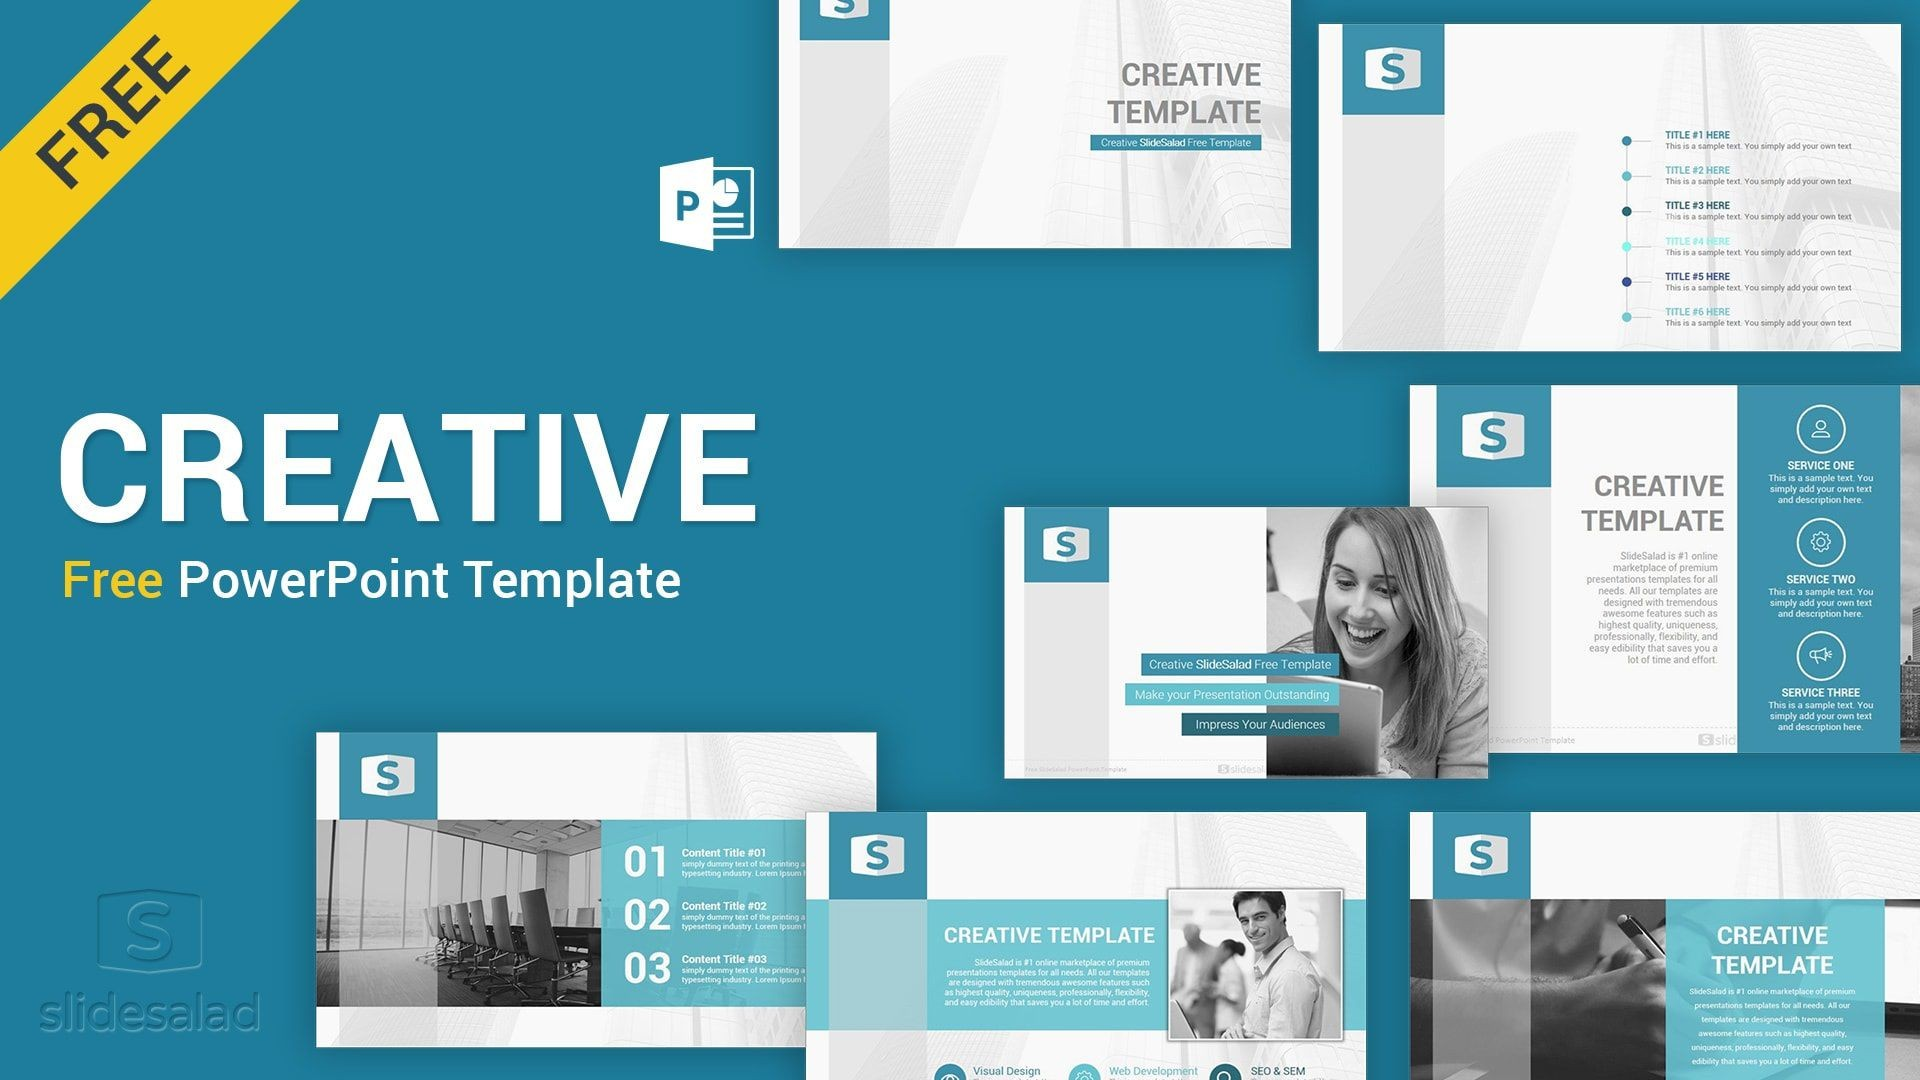 002 Dreaded Creative Powerpoint Template Free Sample  Download Ppt For Teacher1920